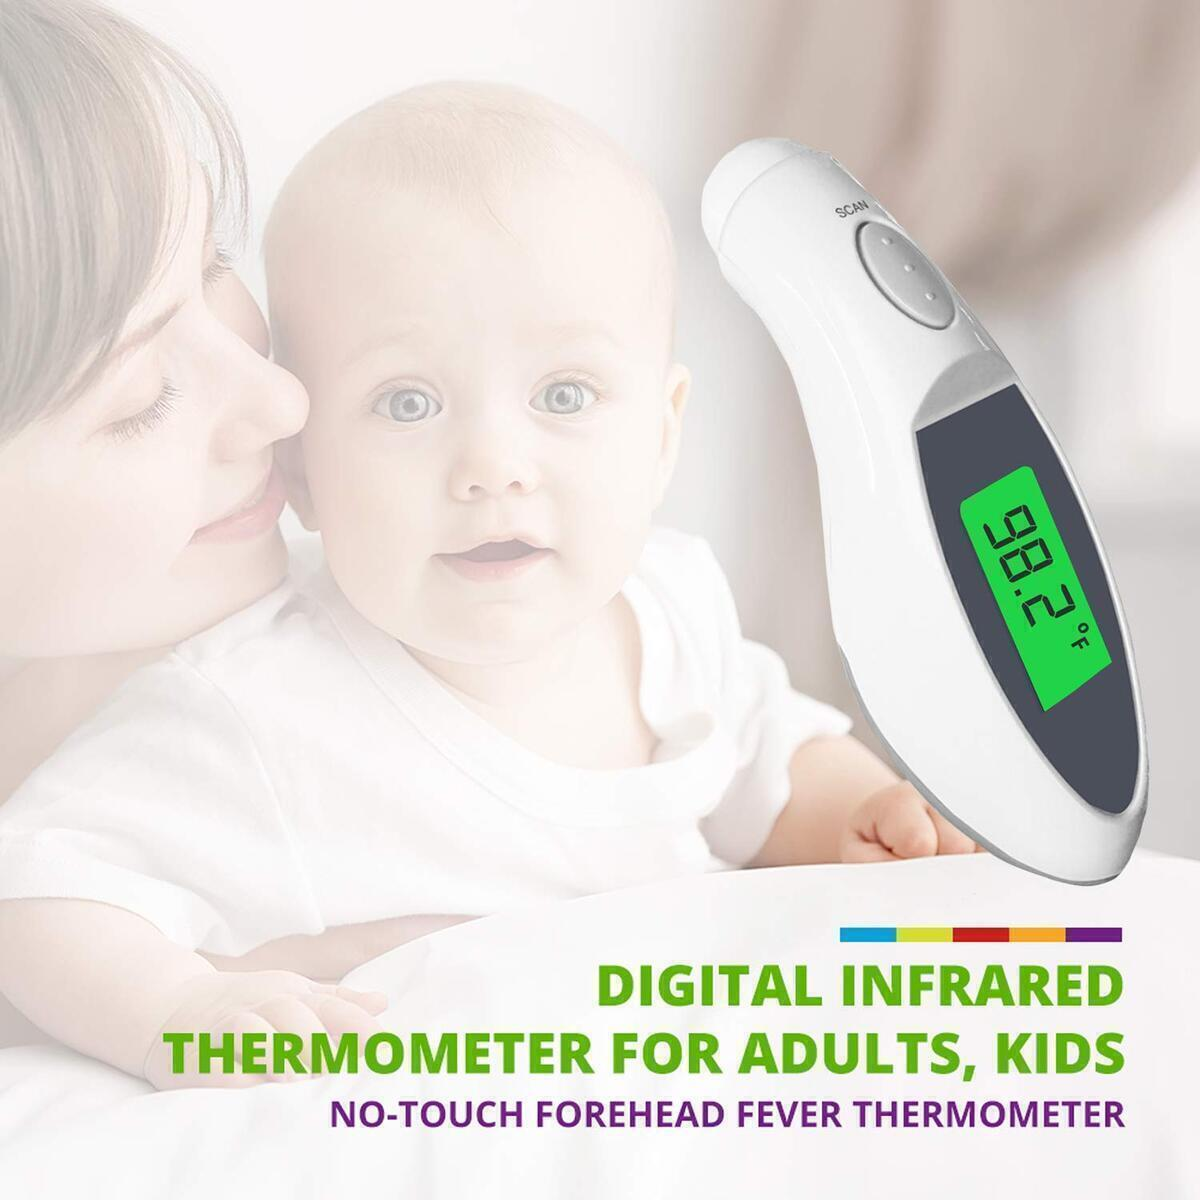 Njoyt Forehead Thermometer for Adults and Kids - Quick, Non-Contact Infrared Fever Monitoring Gauge - Lightweight, Easy to Read Digital LCD Display - Accurate & Instant Body Heat & Temperature Scanner